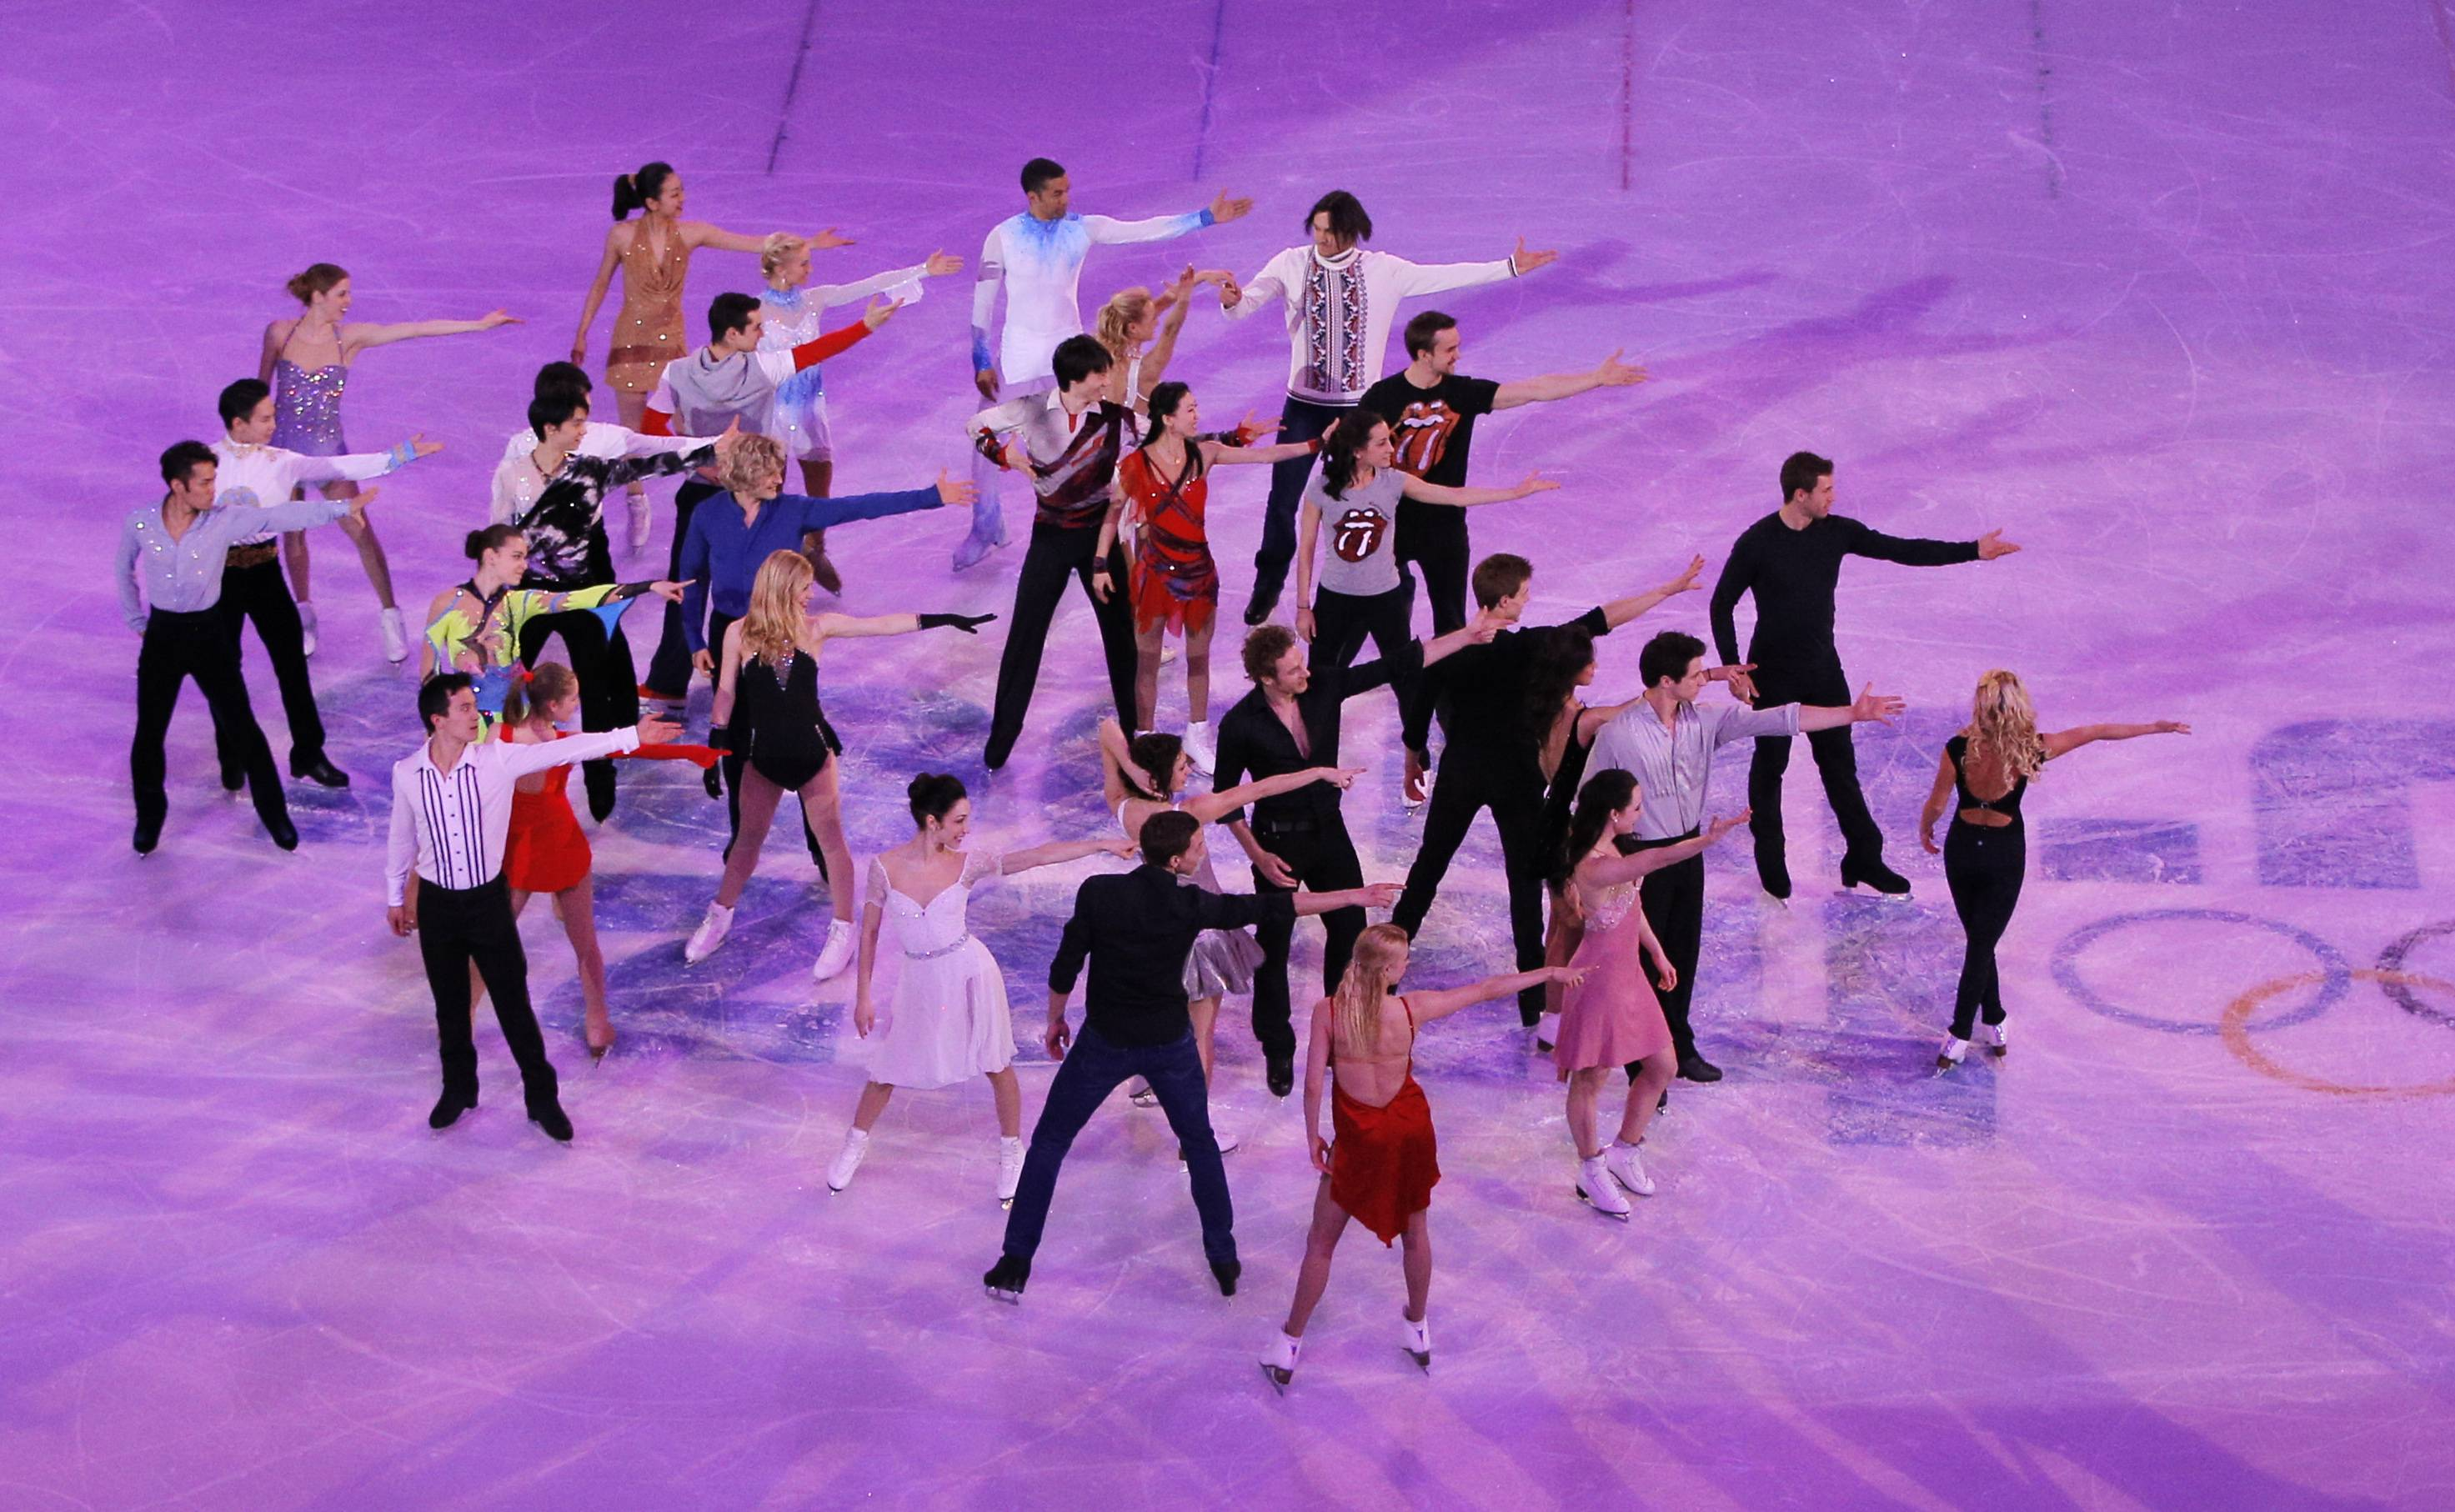 Skaters perform during the final of the figure skating exhibition gala at the Iceberg Skating Palace during the 2014 Winter Olympics, Saturday, Feb. 22, 2014, in Sochi, Russia.